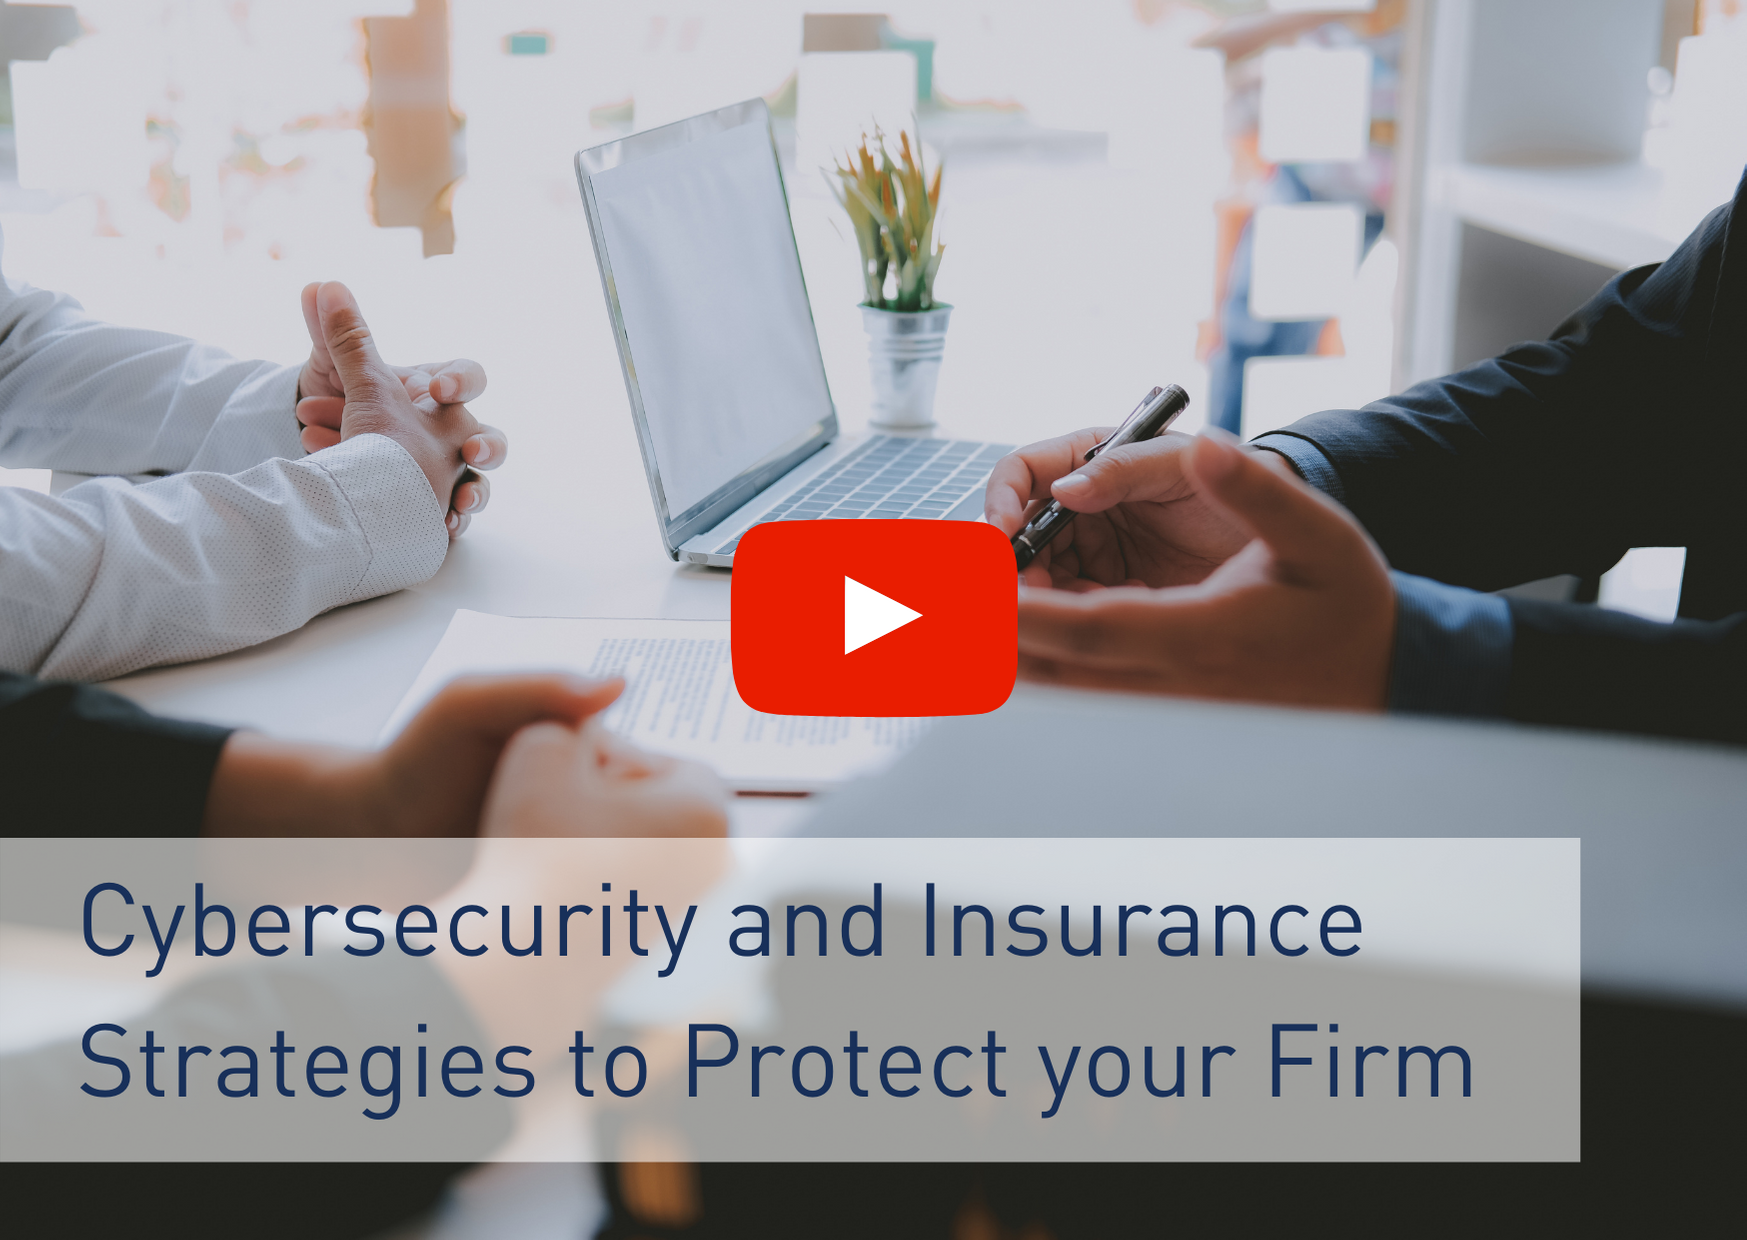 Cybersecurity and Insurance Strategies to Protect your Firm